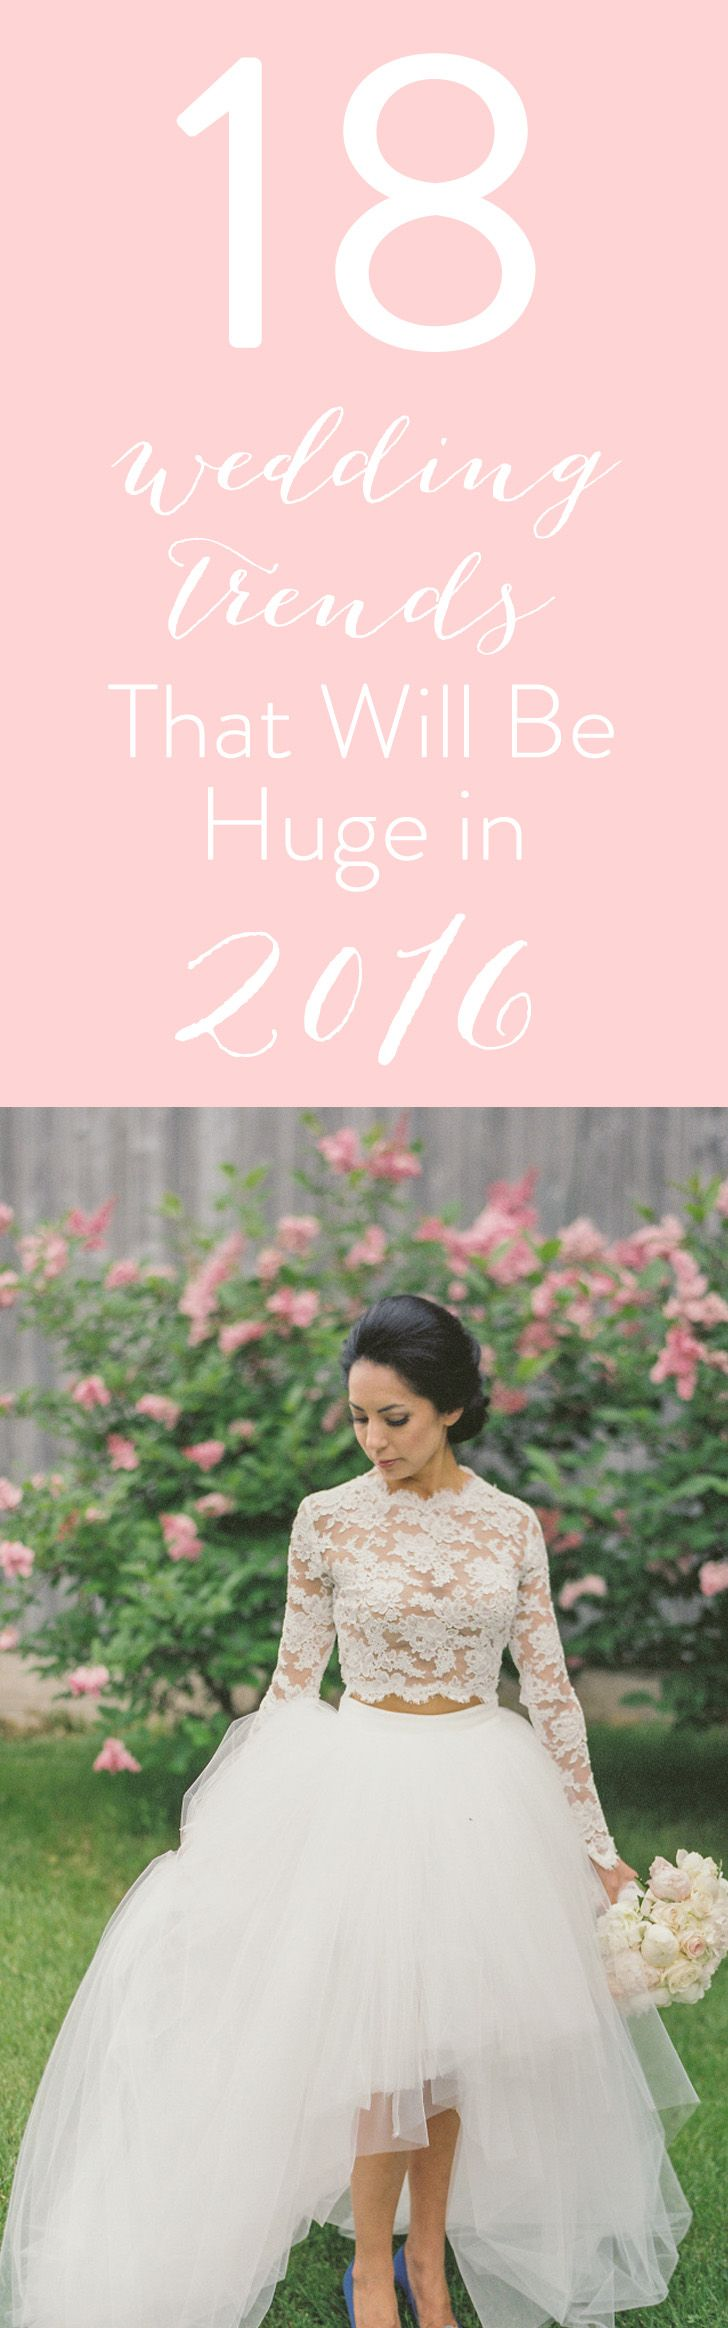 The top 2016 wedding trends are here! Which are your favorites? http://www.stylemepretty.com/2016/01/01/wedding-trend-predictions-2016/